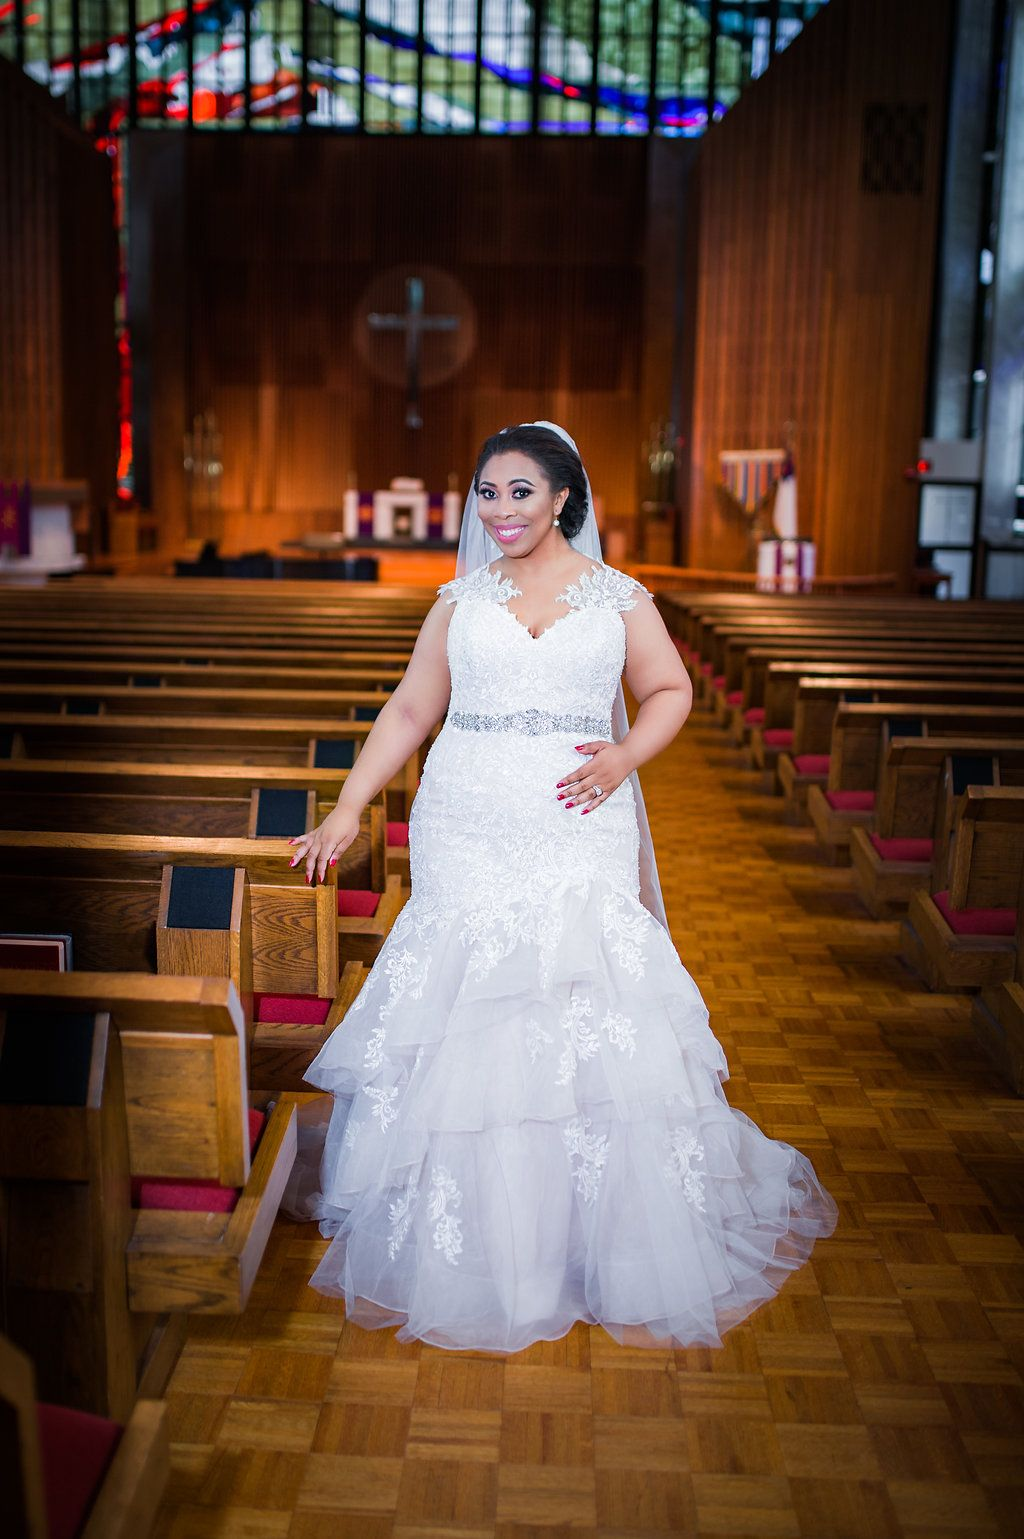 Vestidos de novia en fort worth tx